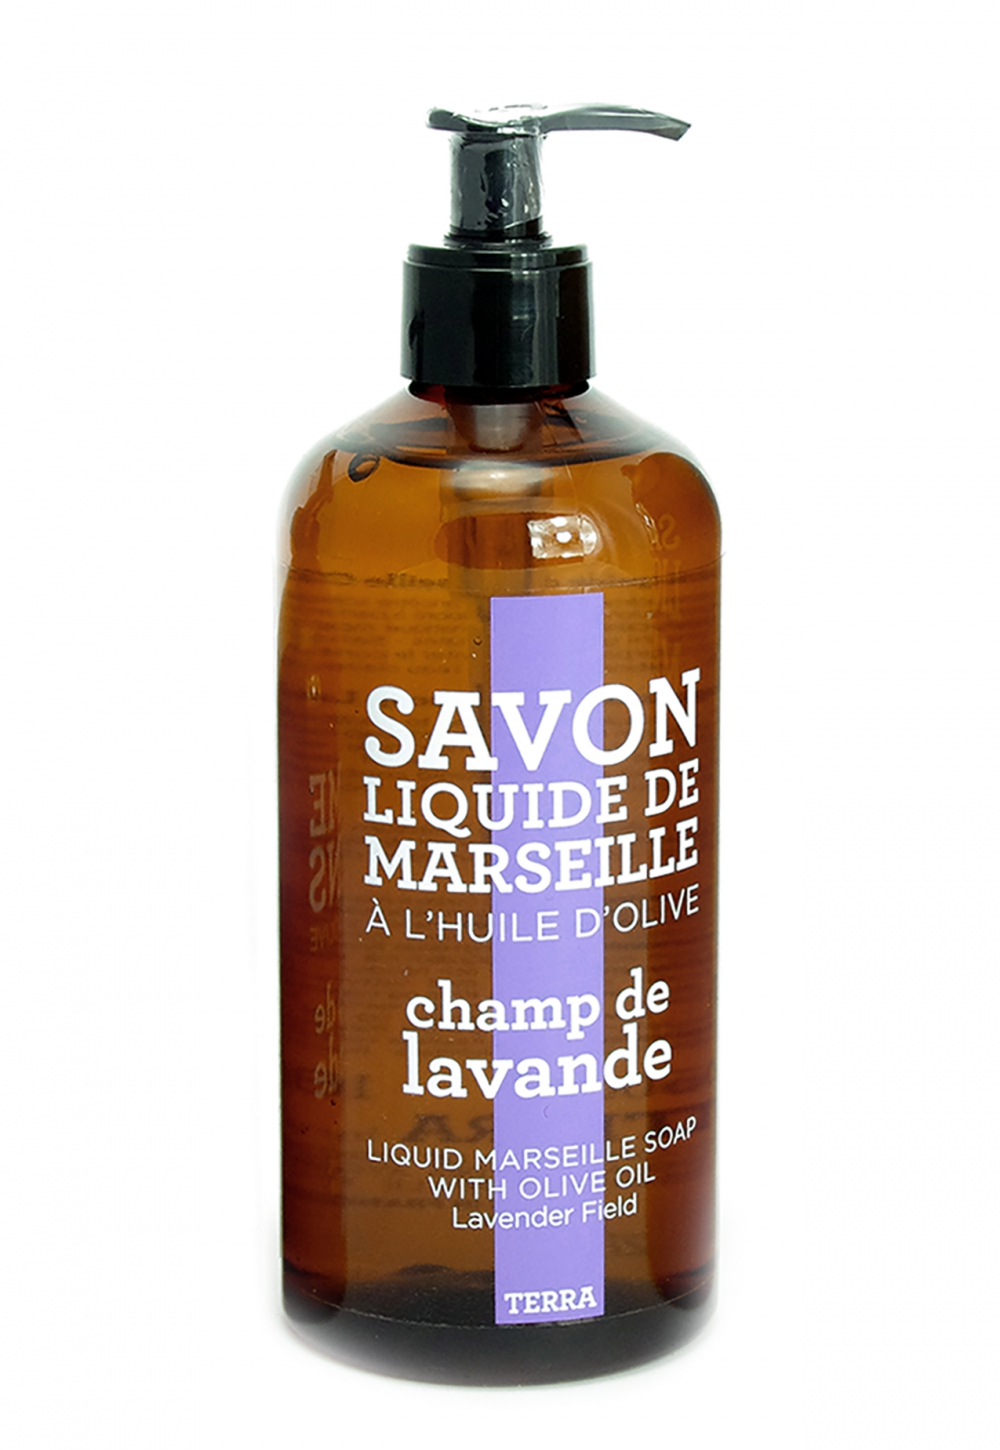 Savon de Marseille - Saponified in a cauldron according to tradition, as does its ancestor, the authentic cube from Marseille, this liquid soap is made from olive and coconut oils and naturally glycerined. Free of artificial colouring and free of animal fats - Parabin free.Available scents: Lemon Verbena, Lavender Field, Candied Orange, and Fig Leaf